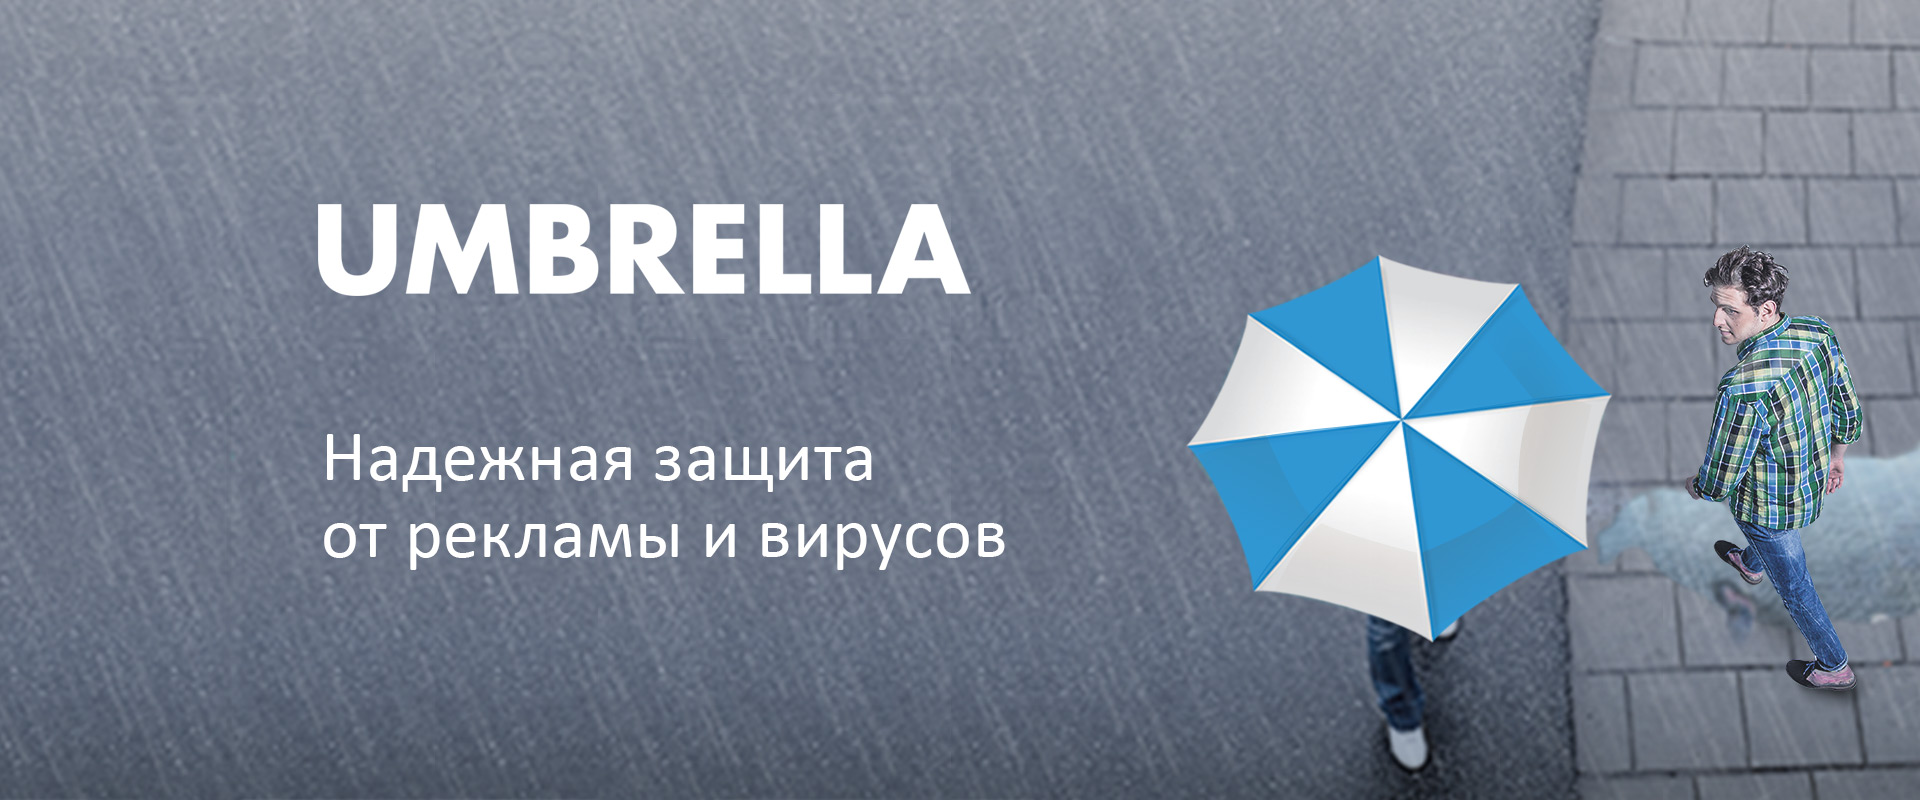 slide_app_umbrella_ru